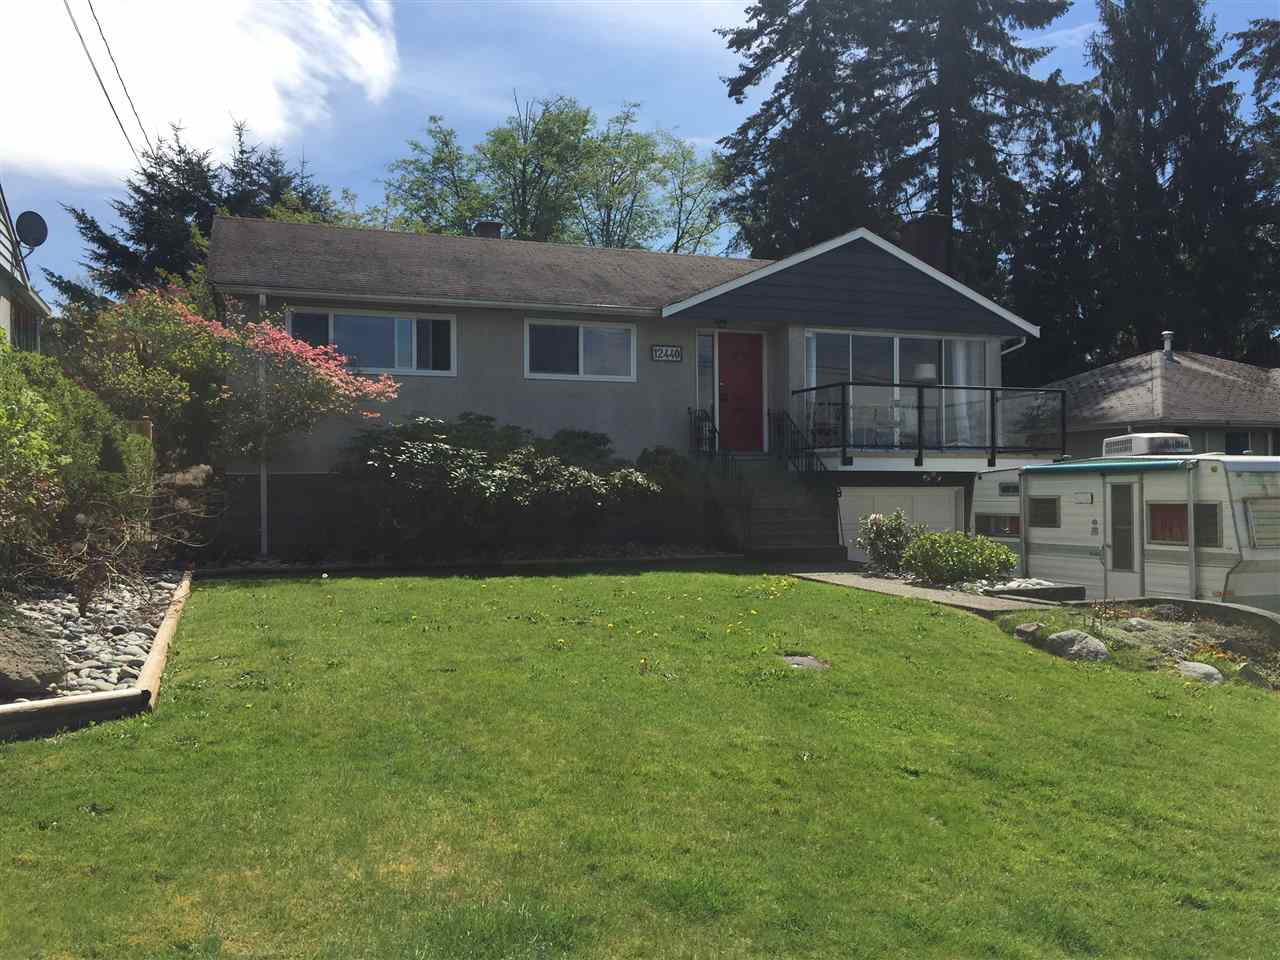 Main Photo: 12440 102 Avenue in Surrey: Cedar Hills House for sale (North Surrey)  : MLS® # R2162968